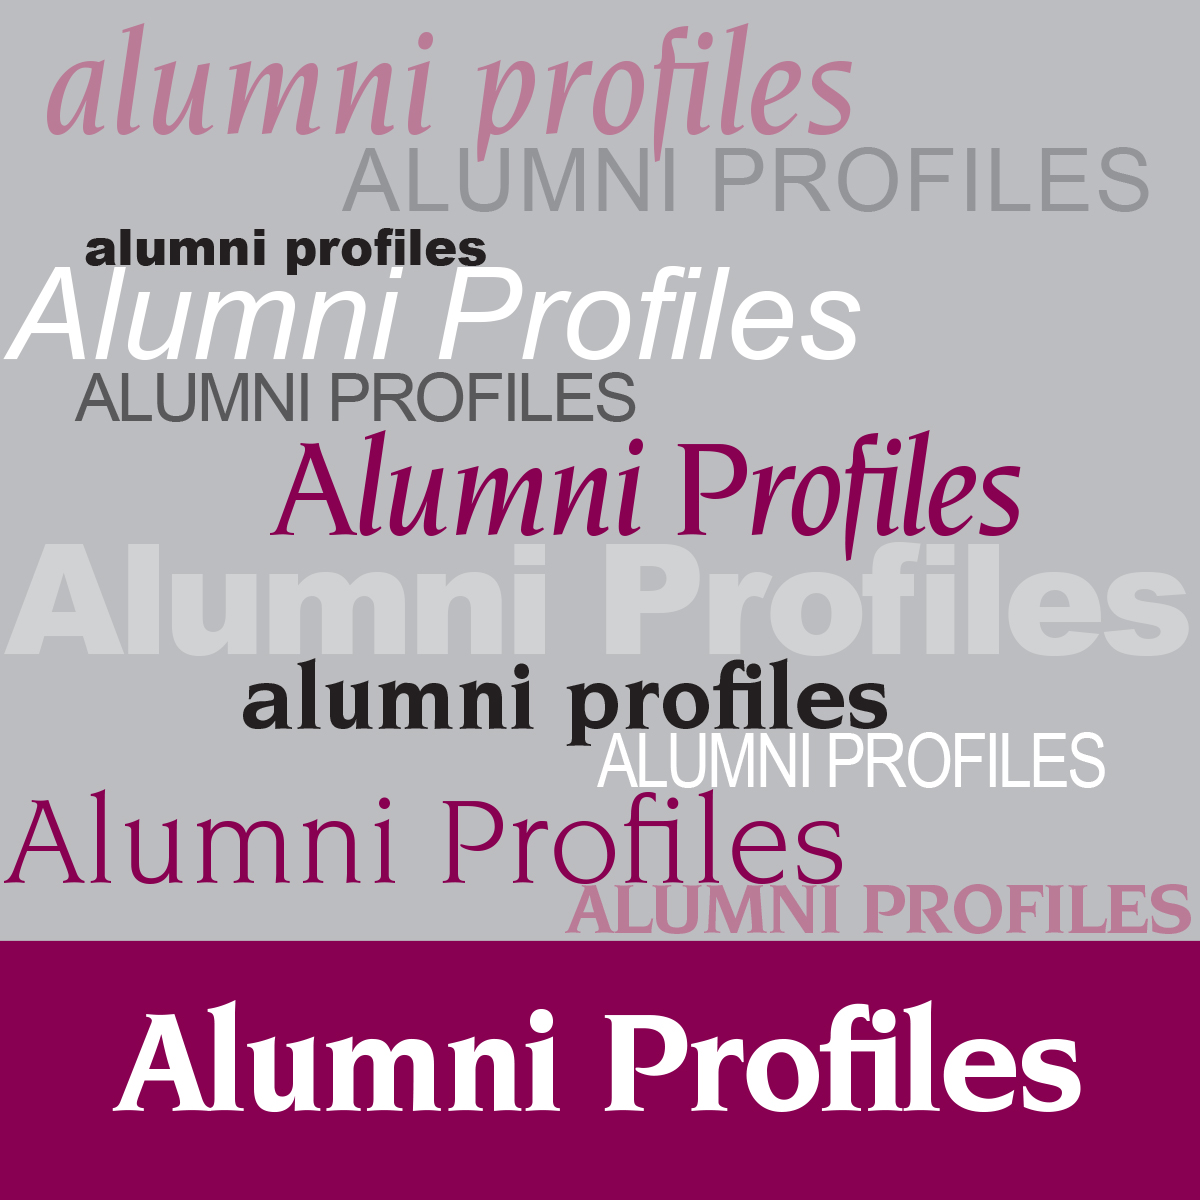 individualsectionphotos_ALUMNI PROFILES.jpg